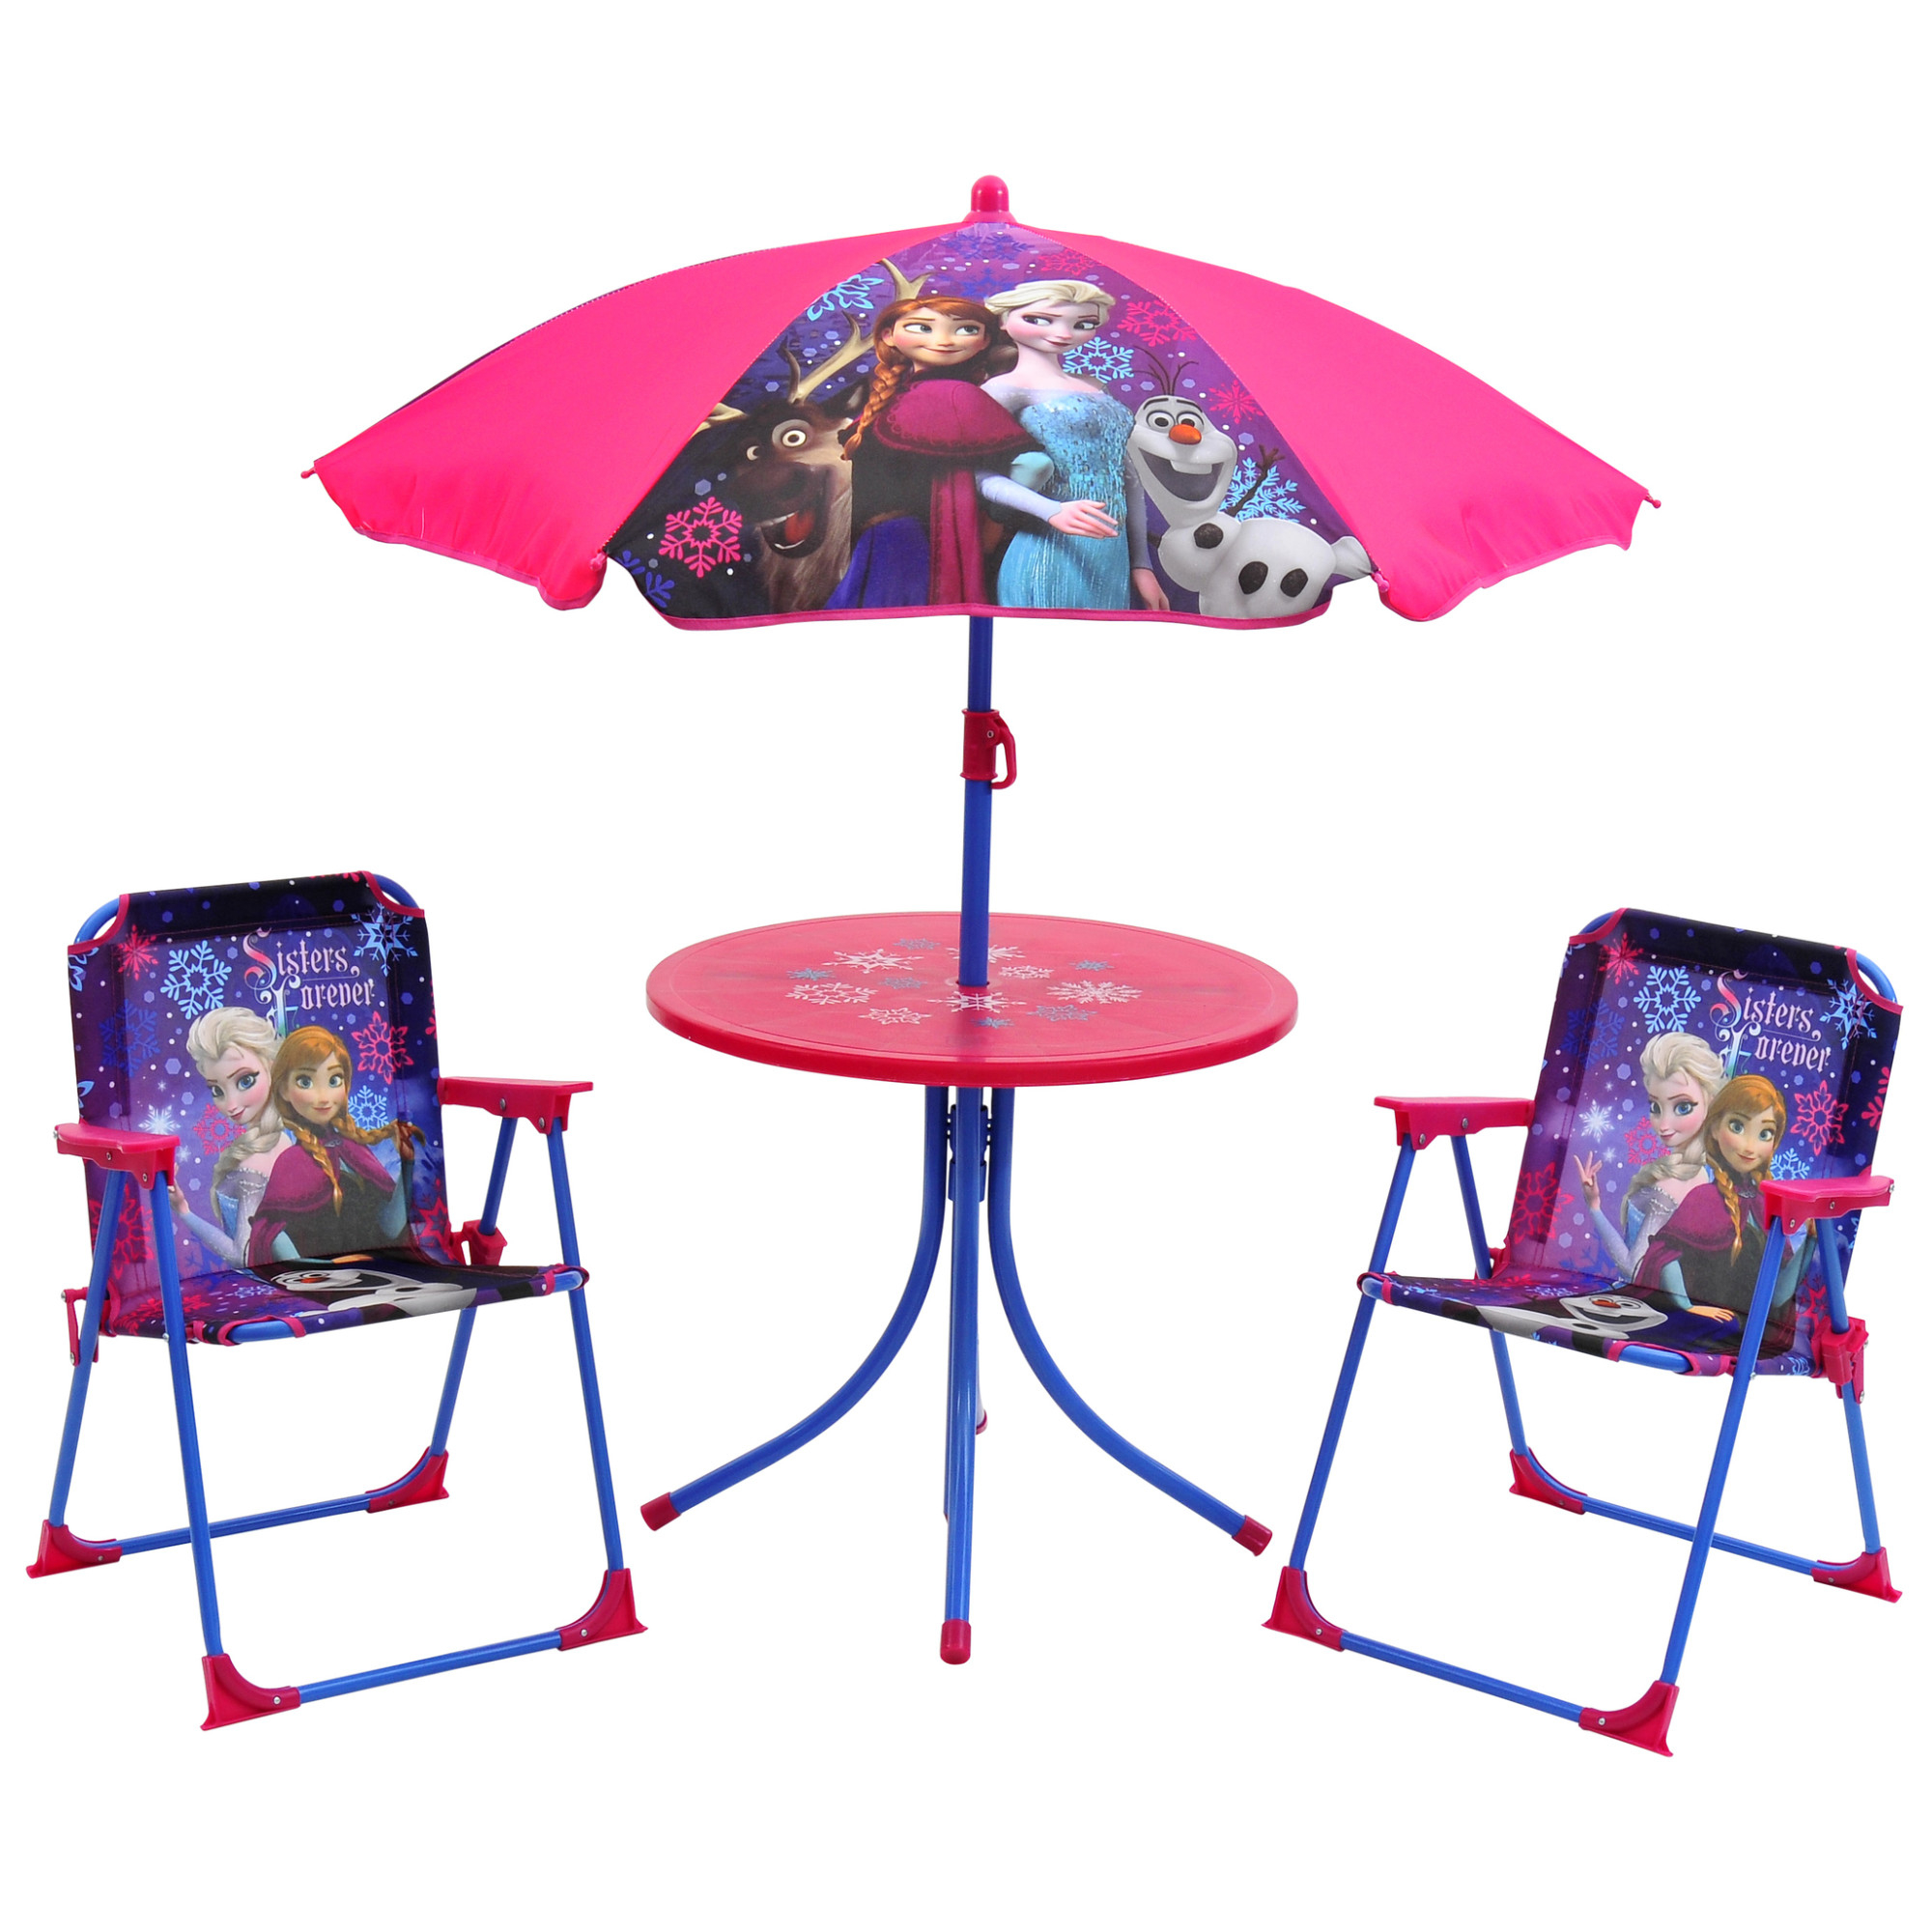 Attirant Kids Patio Furniture Tables Chairs Little Tikes Chair Pics Inside  Dimensions 2000 X 2000